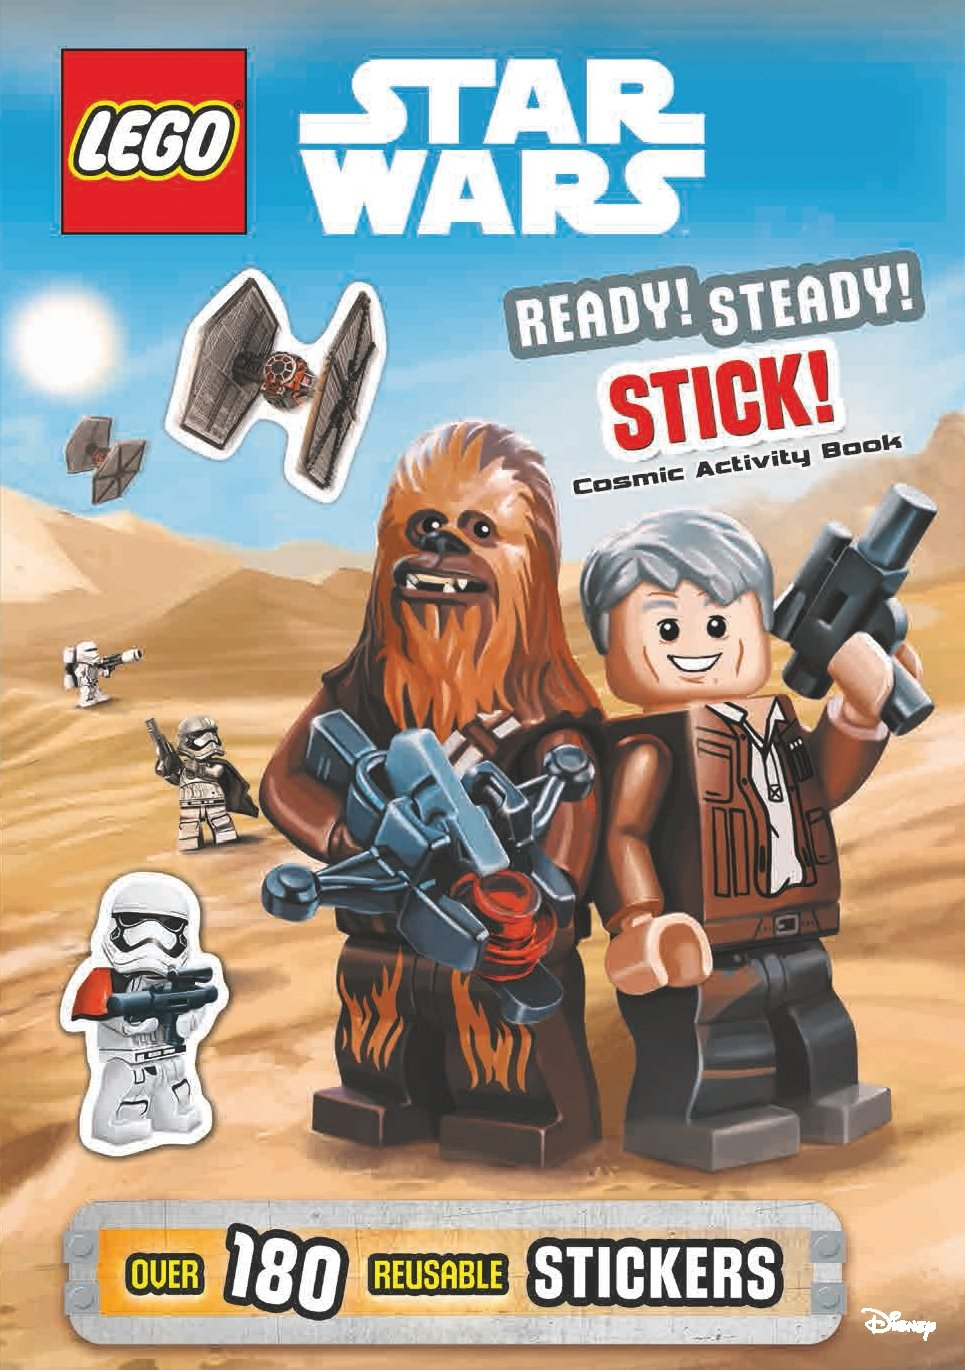 Lego Star Wars: Ready Steady, Stick! (Intergalactic Activity Book)